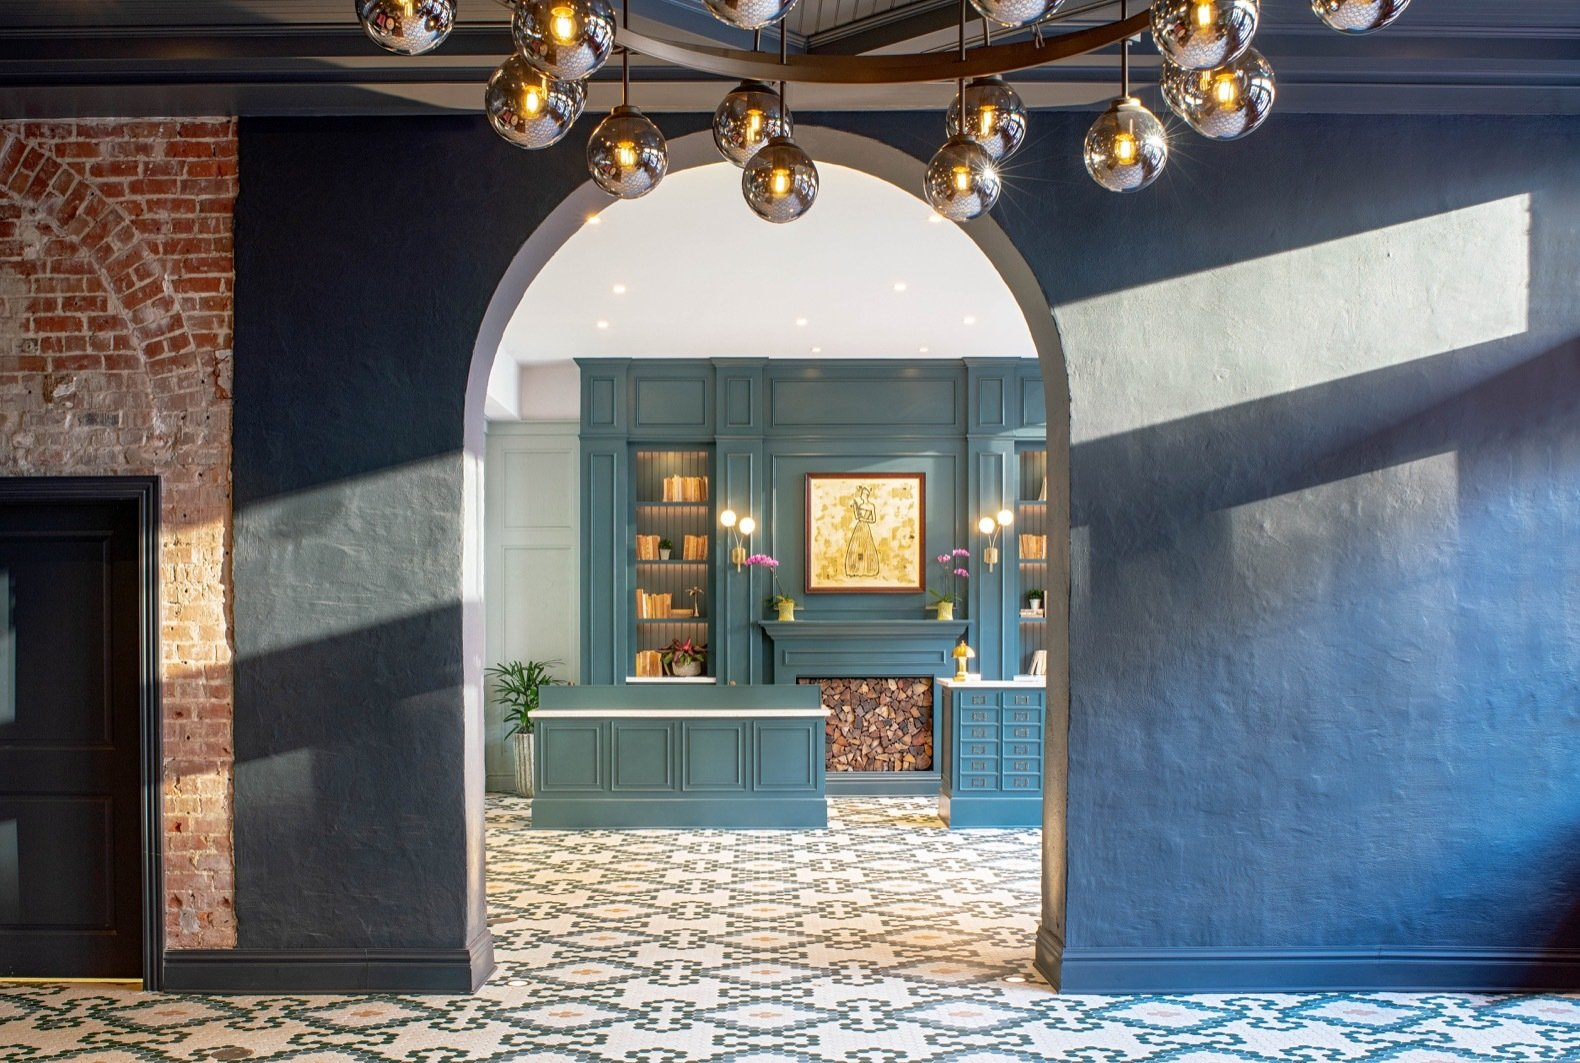 An elegant lobby welcomes guests with evergreen paneled walls and a geometric hex tiled floor from daltile